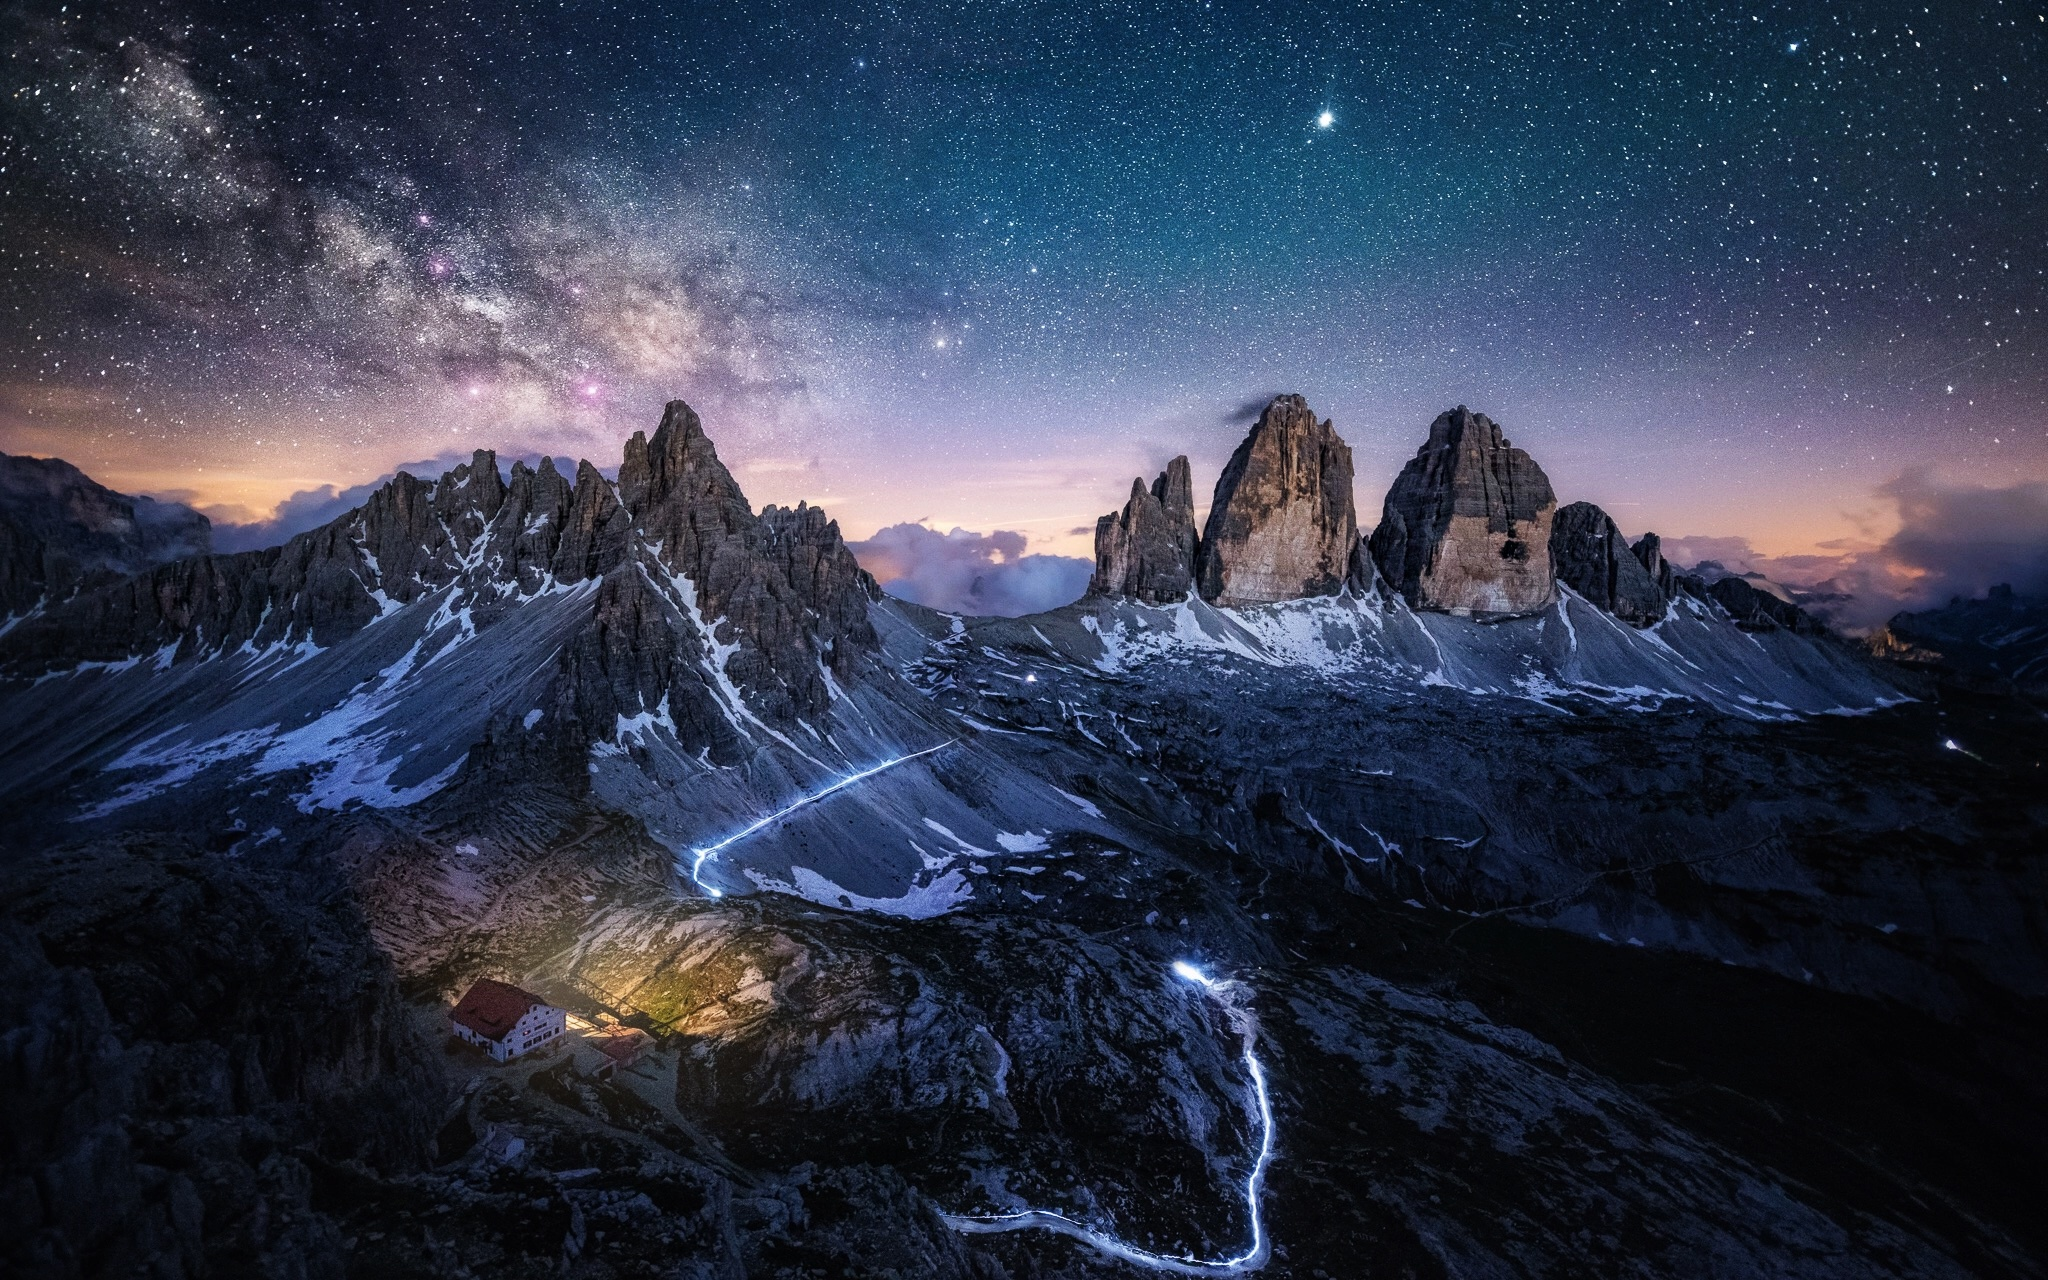 General 2048x1280 mountains nature landscape sky stars night sky